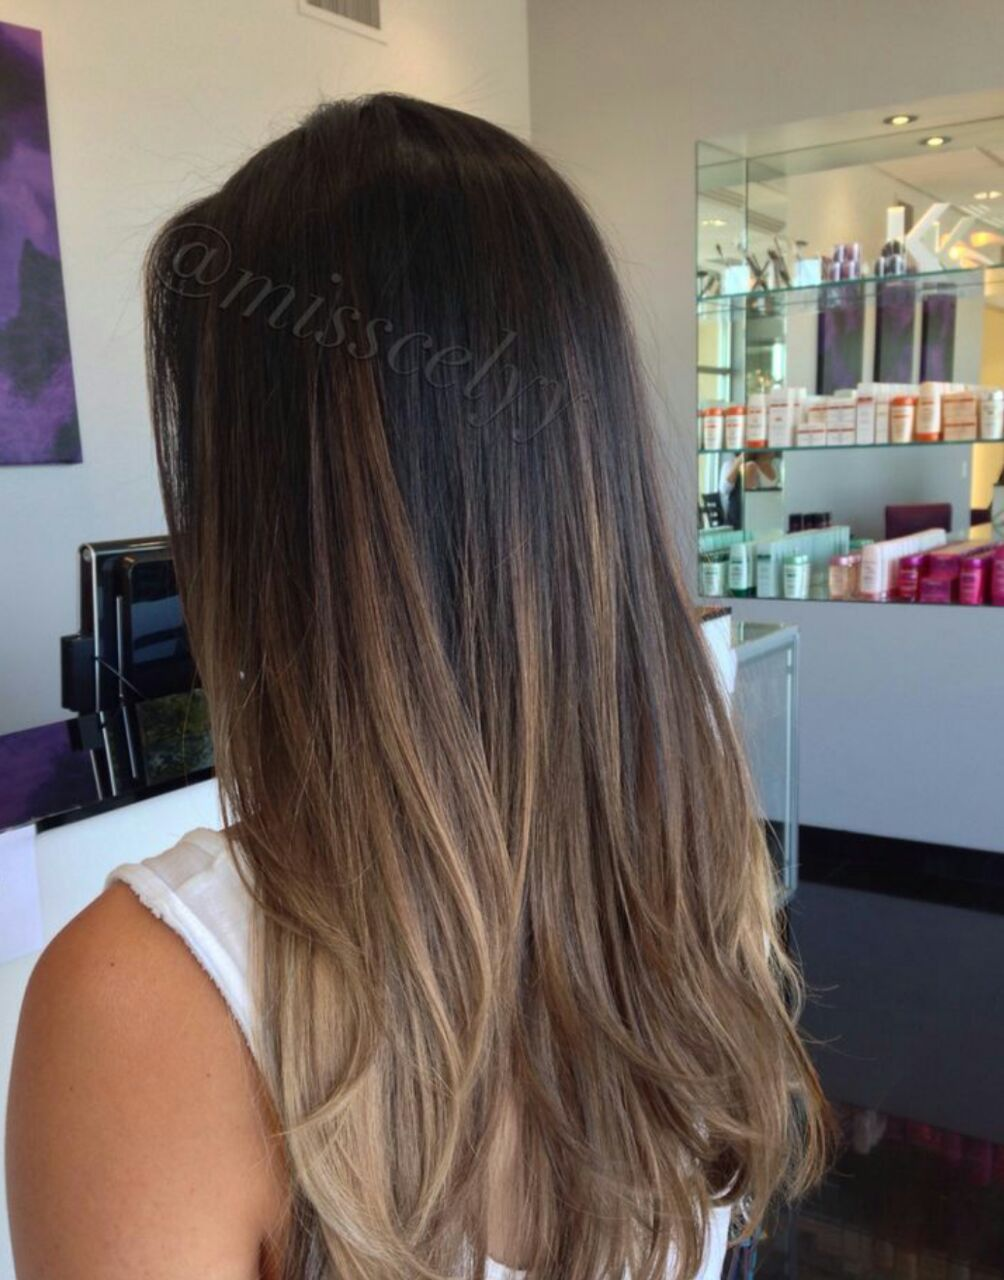 Brown Natural ombre straight hair pictures forecast to wear for autumn in 2019